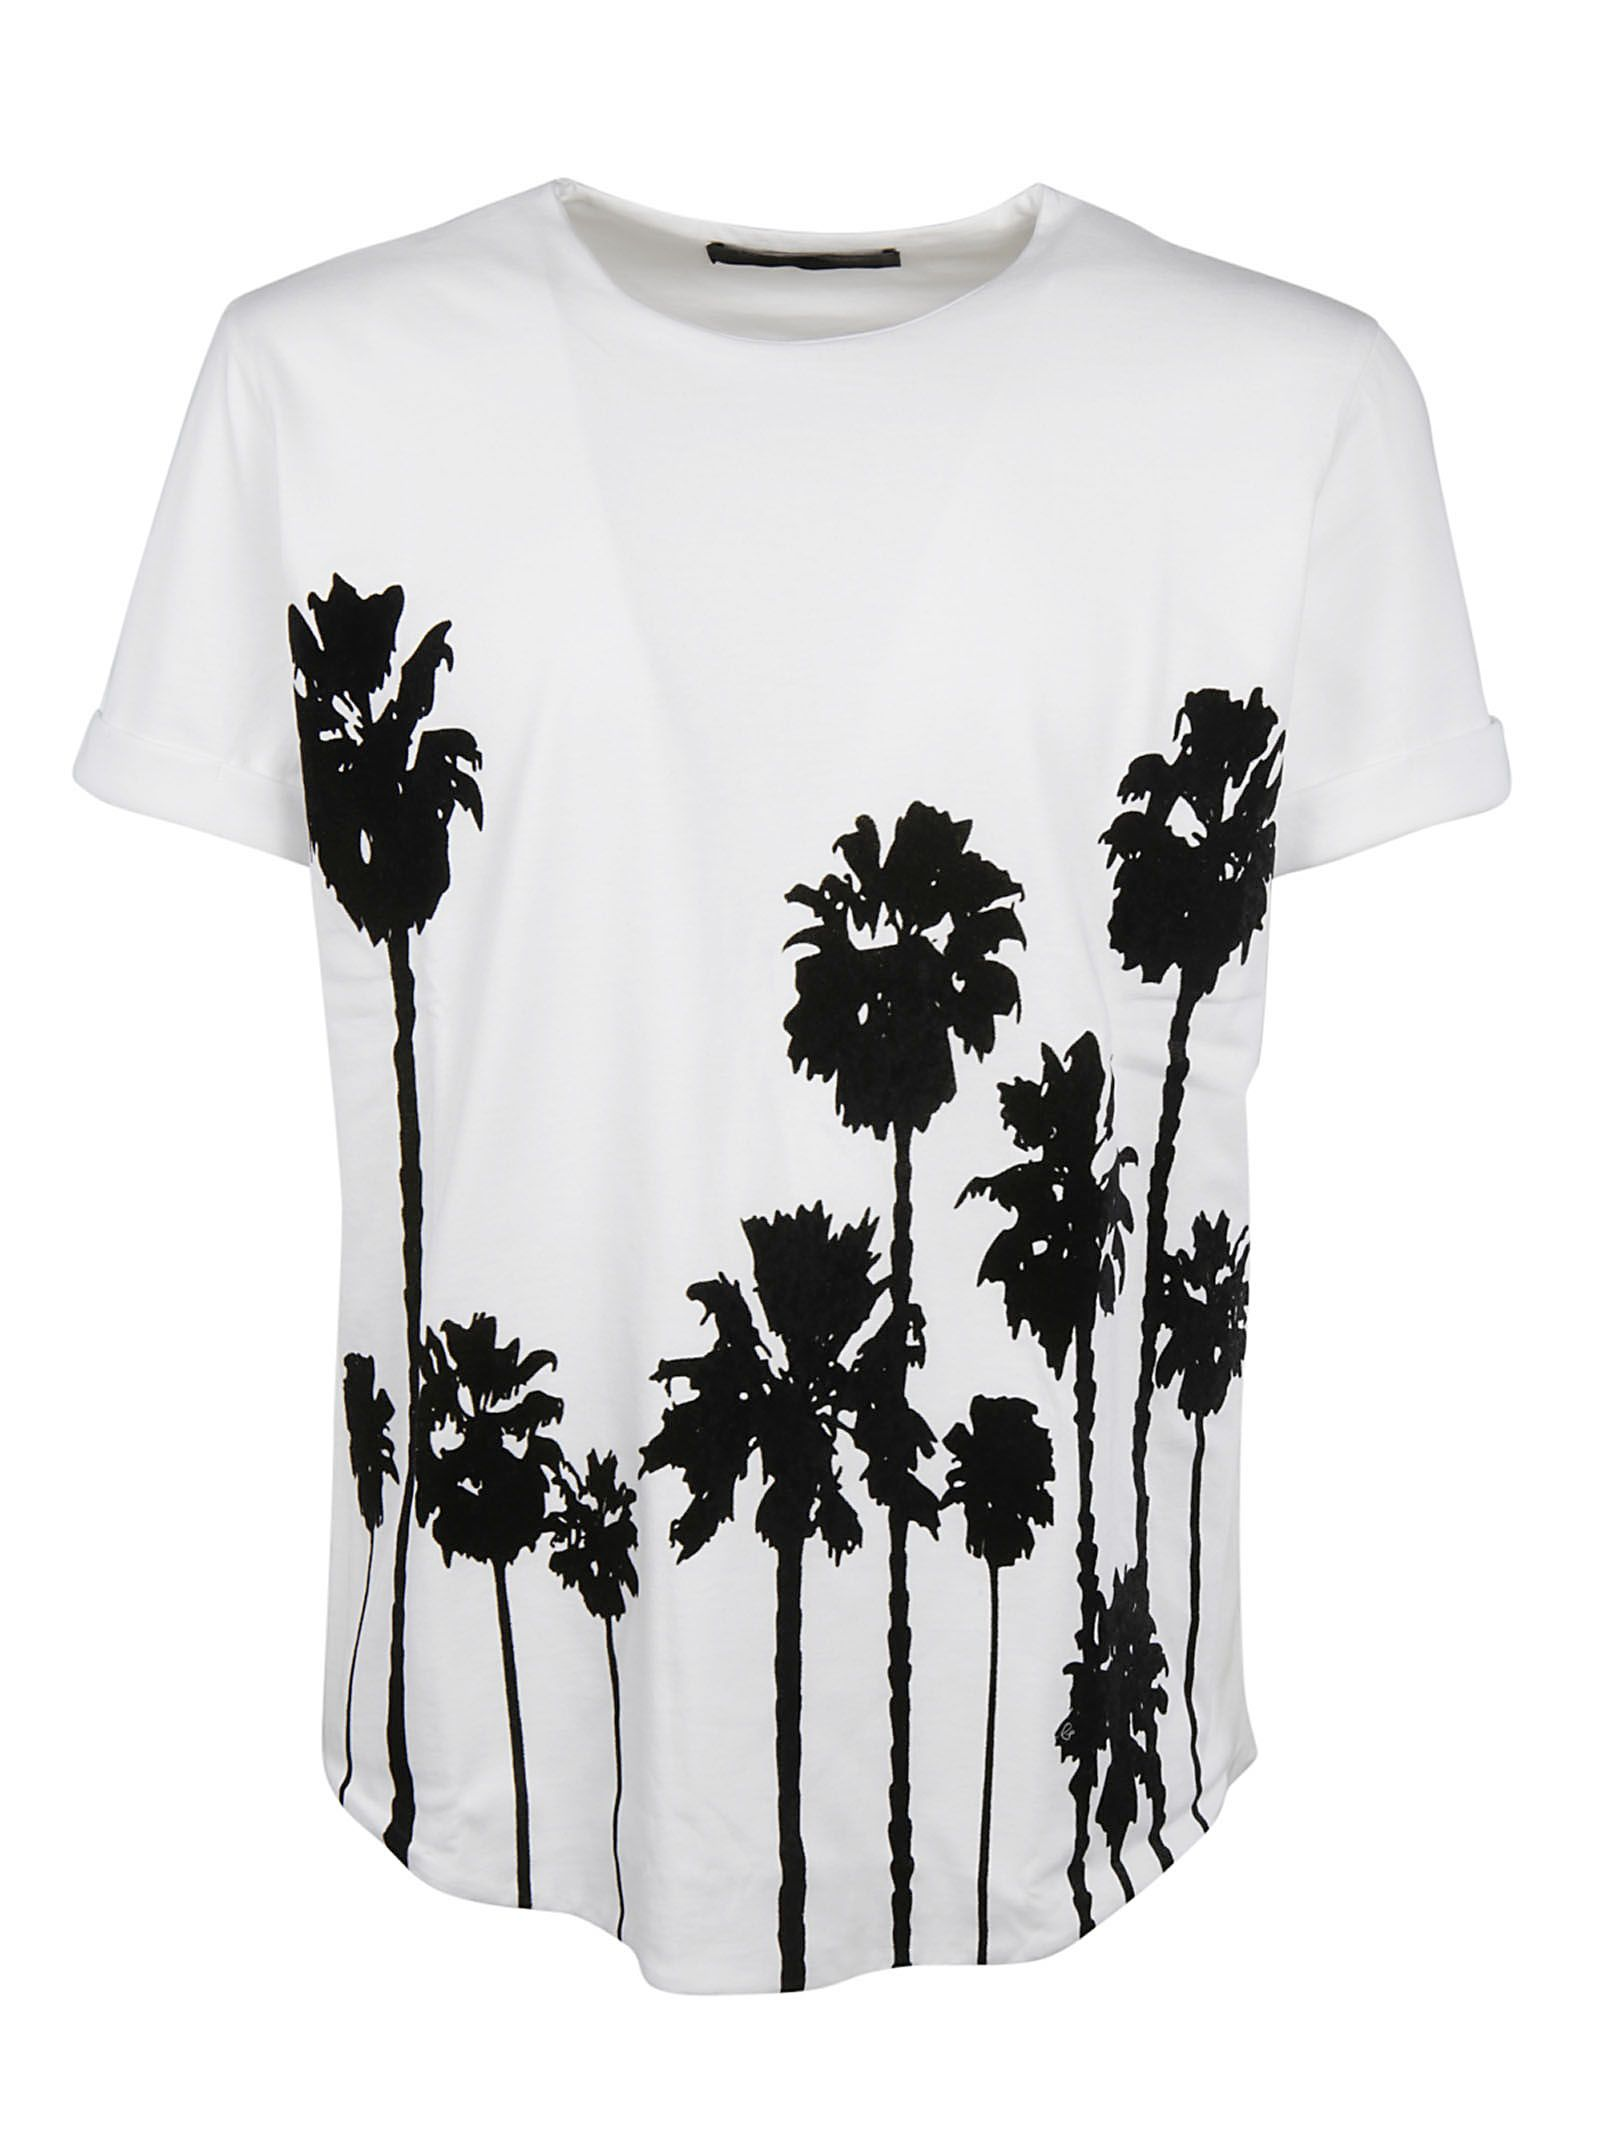 Christian Pellizzari Floral Embroidered T-shirt